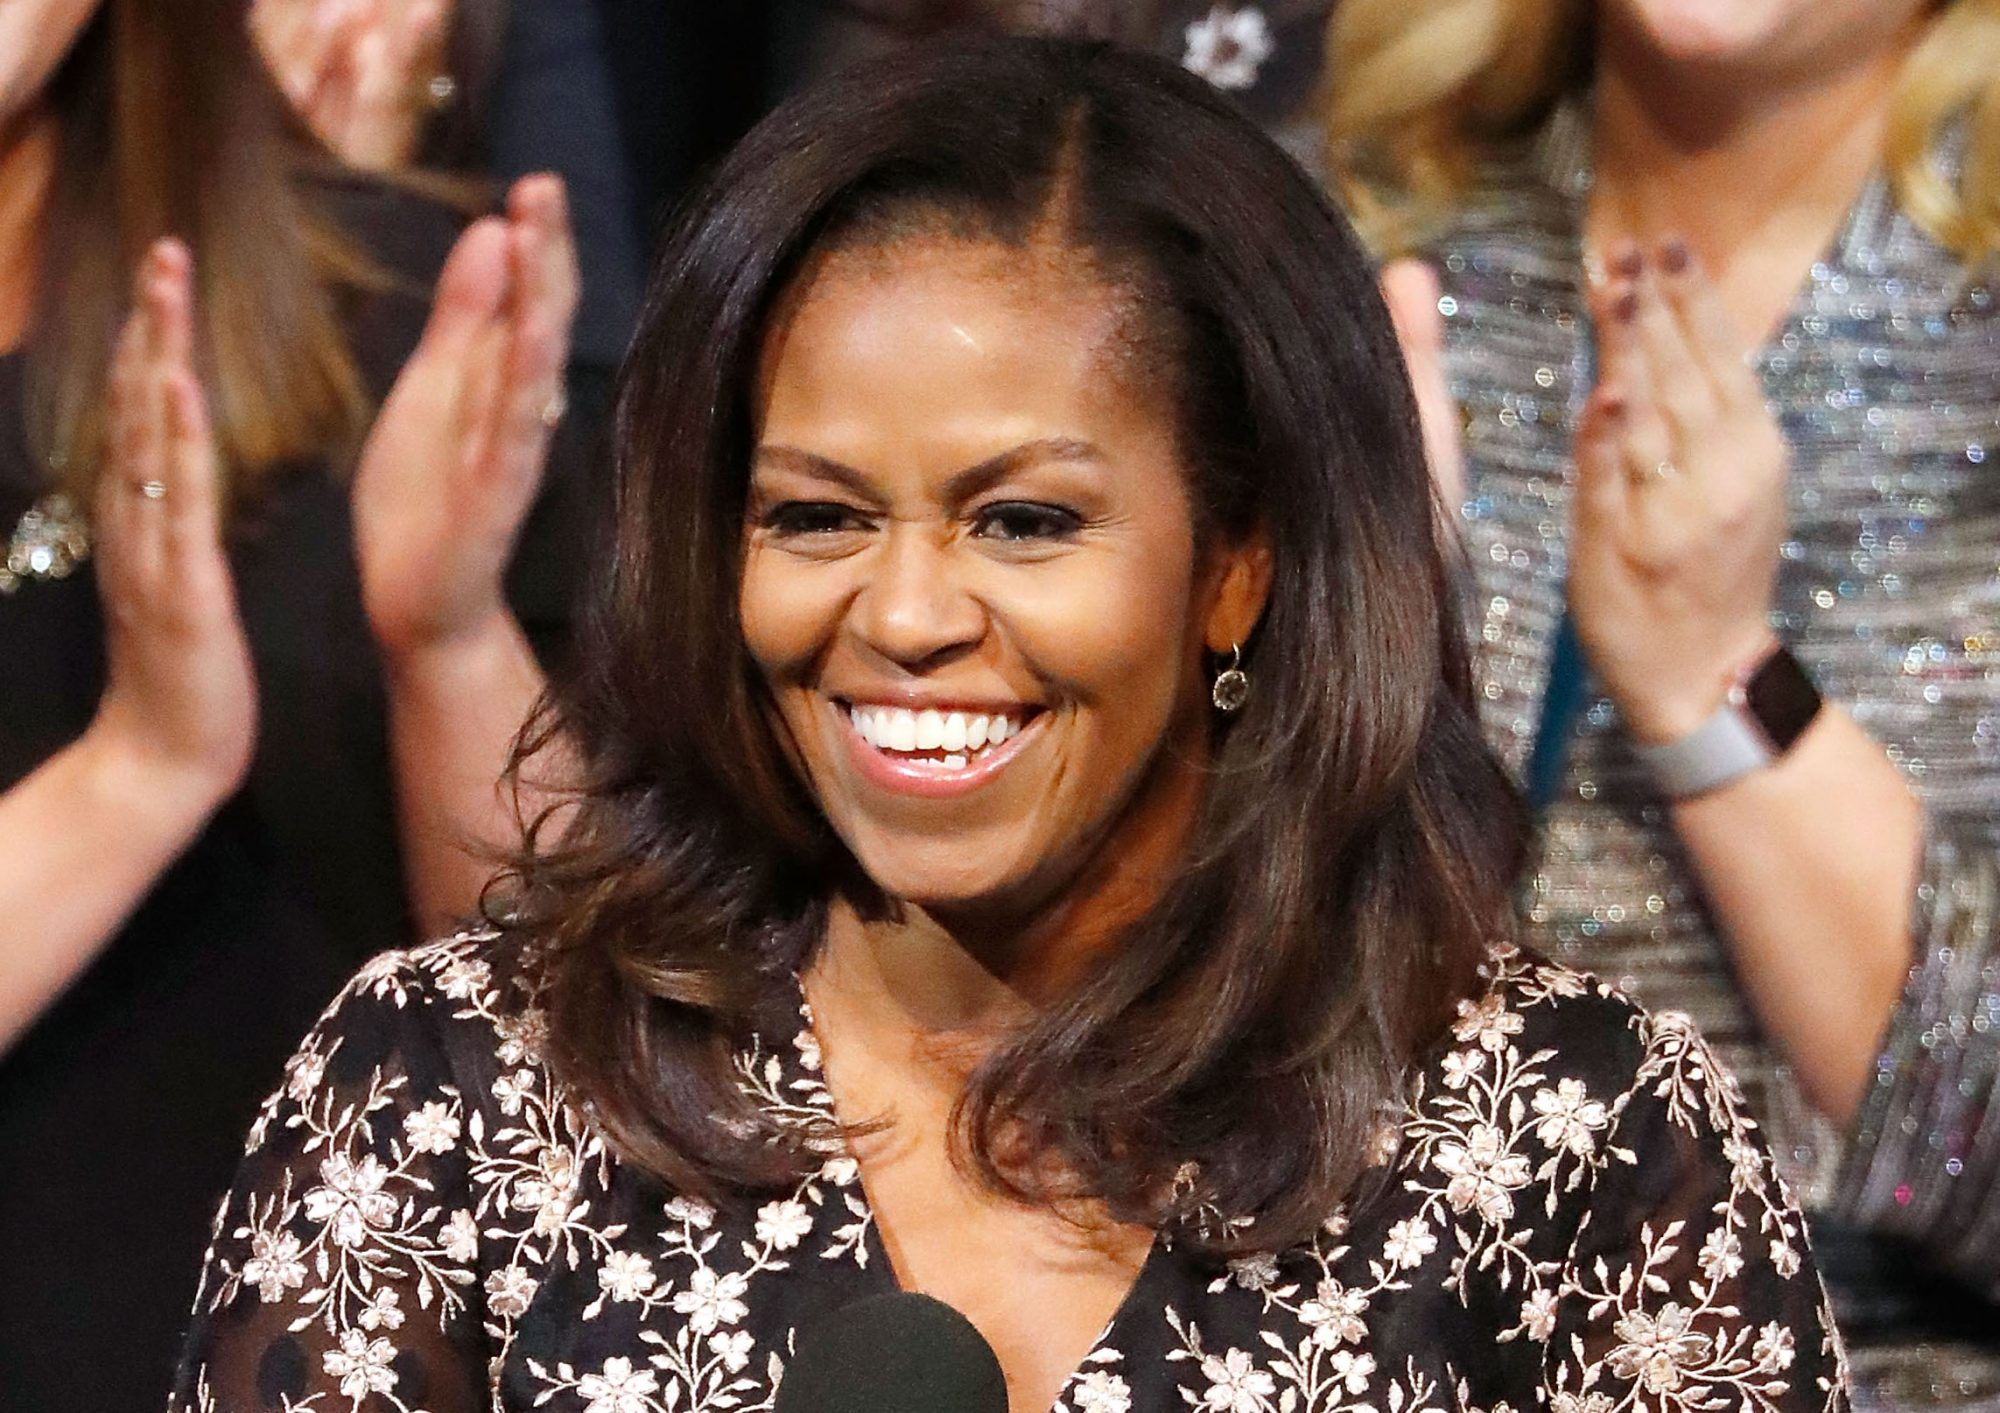 WASHINGTON, DC - FEBRUARY 02: Michelle Obama, former First Lady of the United States, honors the 2018 School Counselor of Year at a special celebration at The Kennedy Center on February 2, 2018 in Washington, DC.